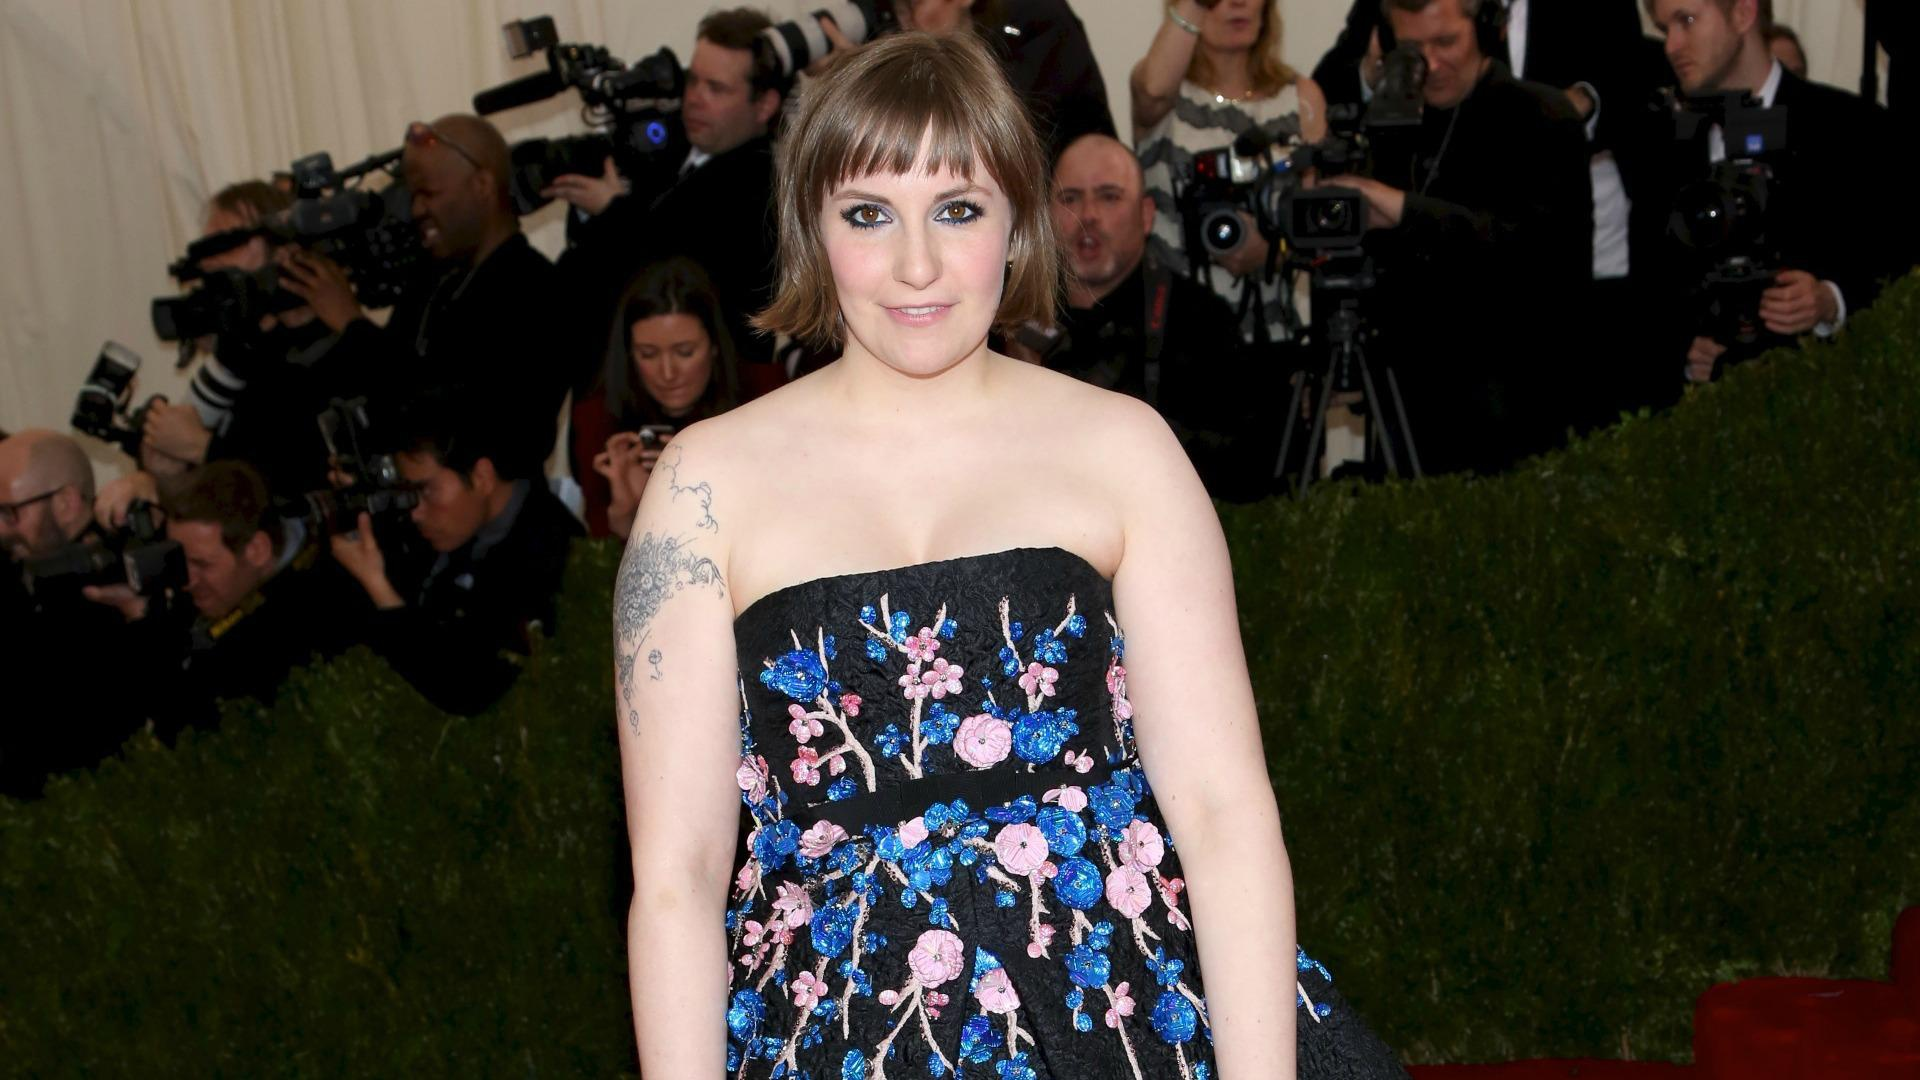 PHOTO: Lena Dunham's dog is a real pain in the butt